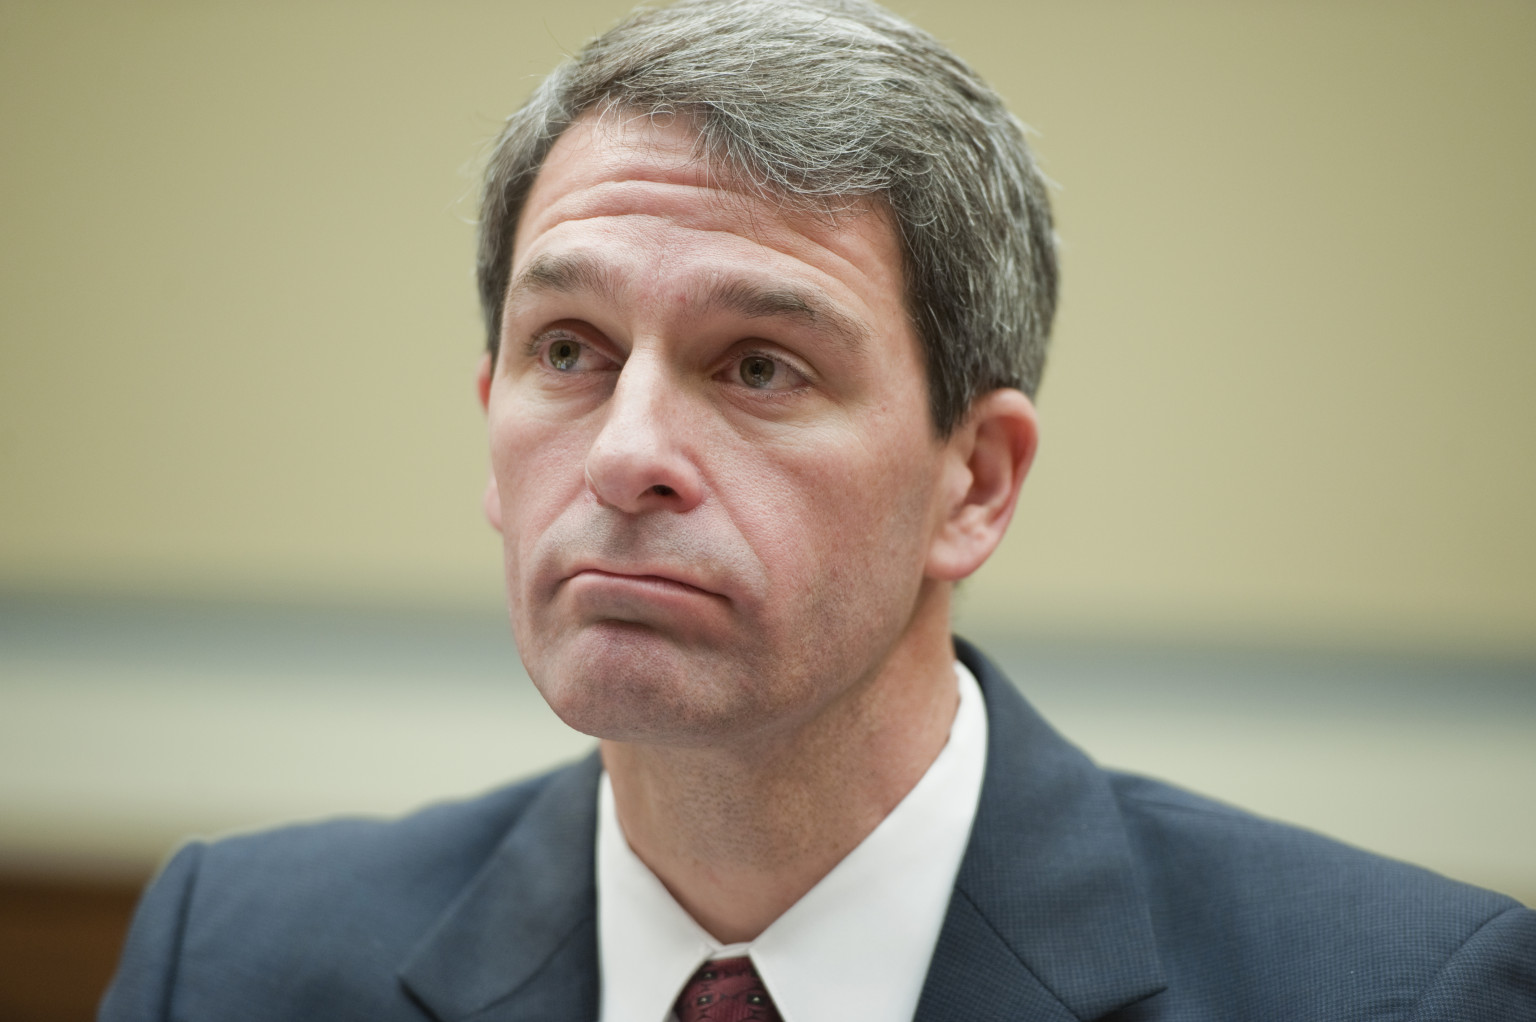 Like his campaign, Ken Cuccinelli's fundraising is in the dumpster